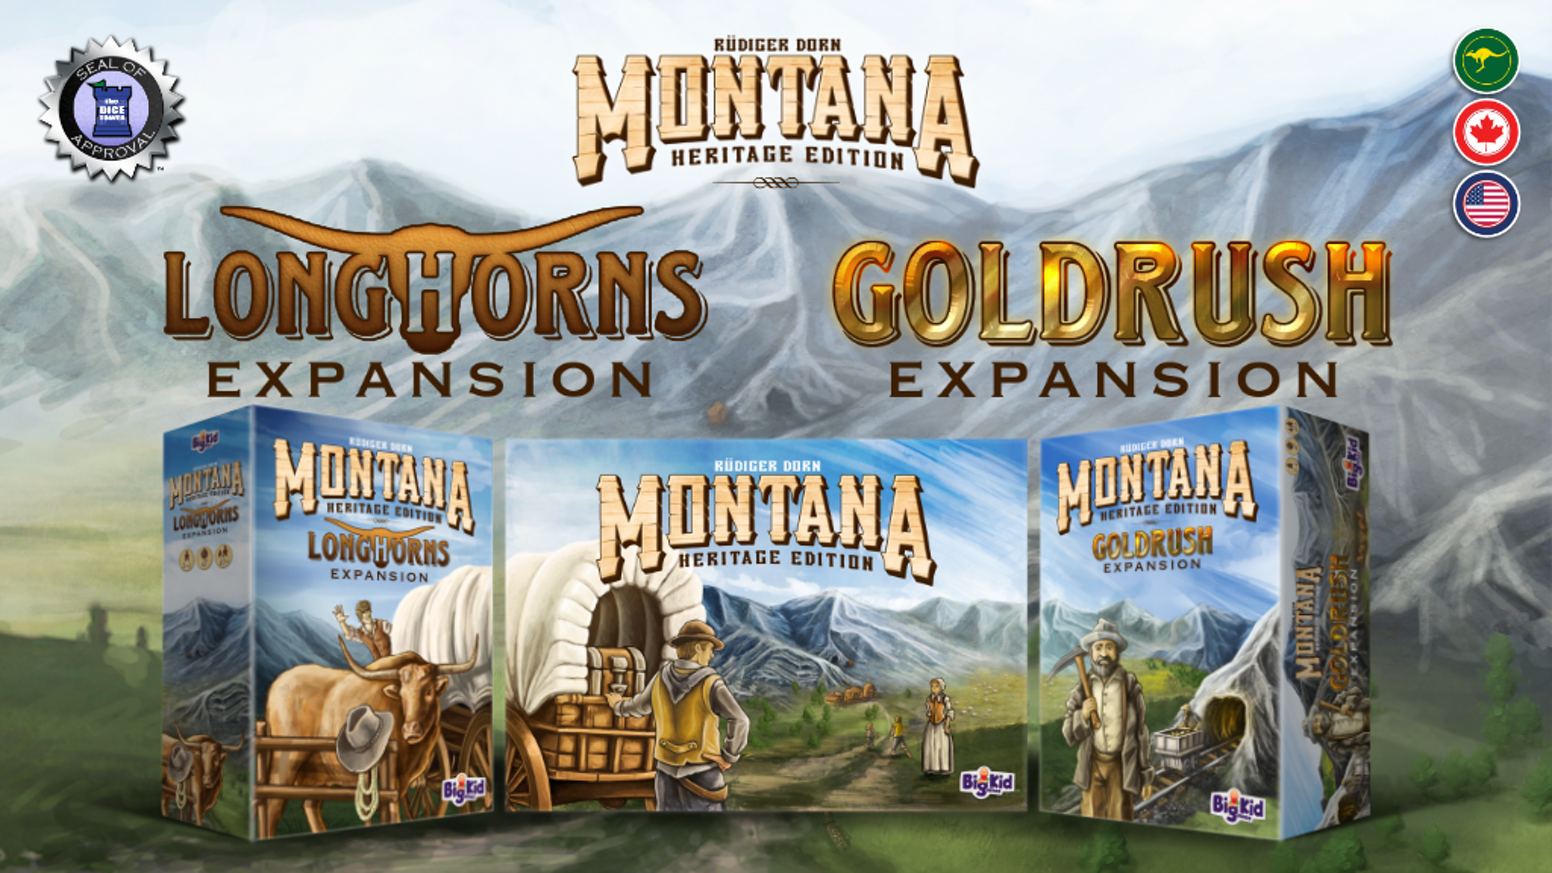 Supplies, ranches, watchtowers, special events, new landscapes, & more! 7 modules for Rüdiger Dorn's hit game in two packed expansions.